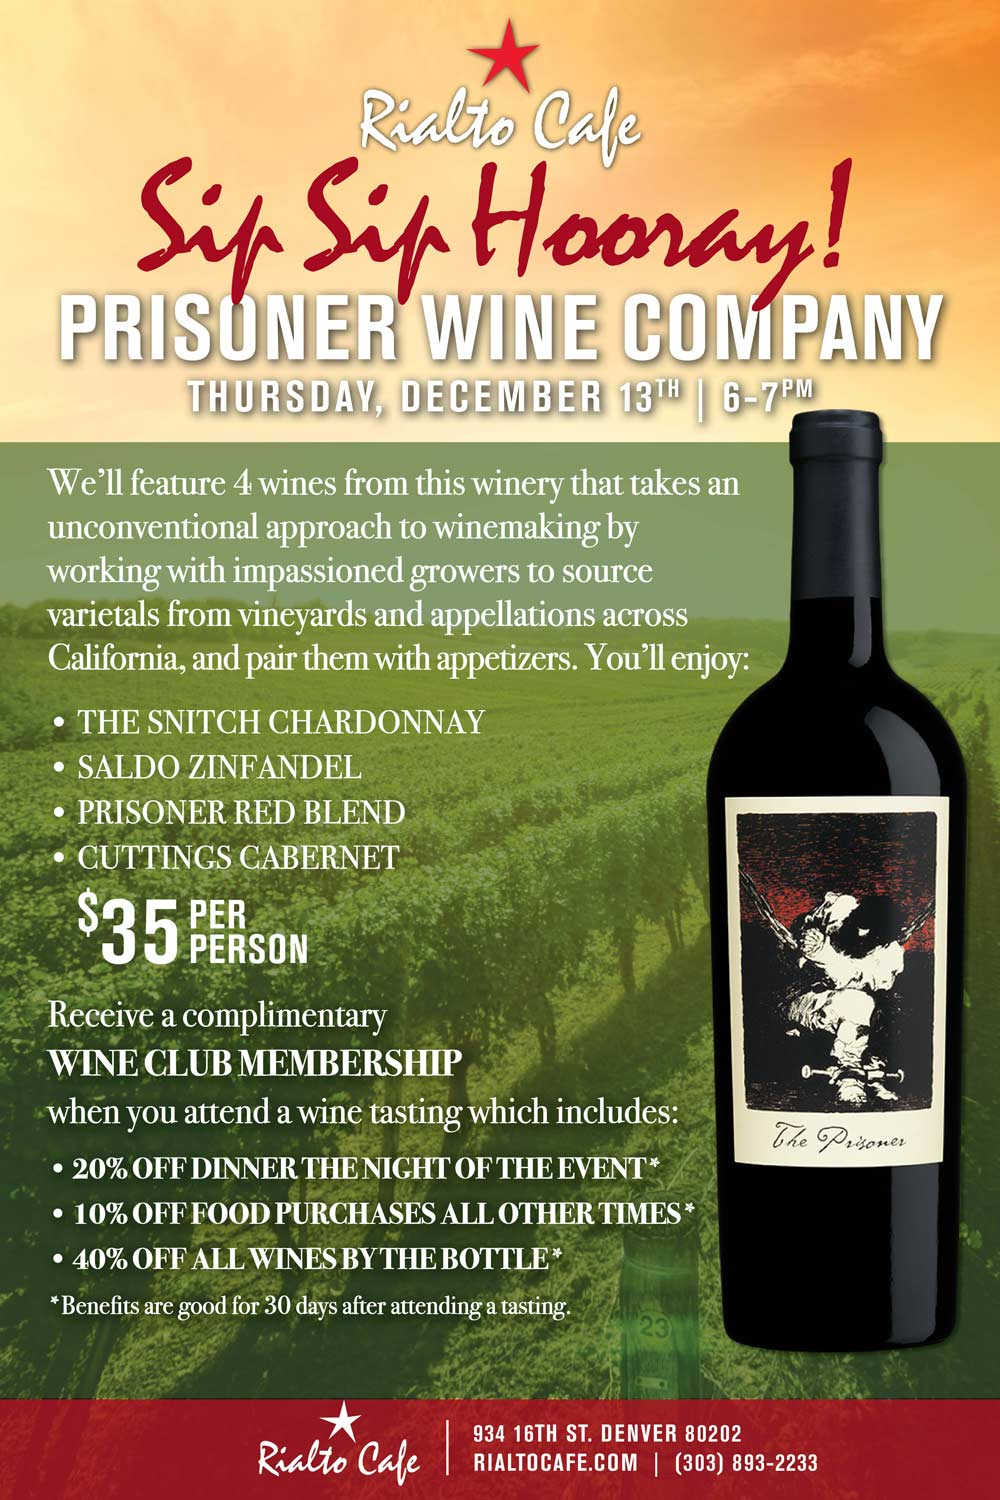 December Wine Tasting - Purchase your ticket now to reserve your seat! Limited seats available. Your purchase is good for all wines, pairings and 30 days of our Wine Club Membership. Call for more information: 303-893-2233Need parking? Please ask about our discounted parking available at Independence Plaza.